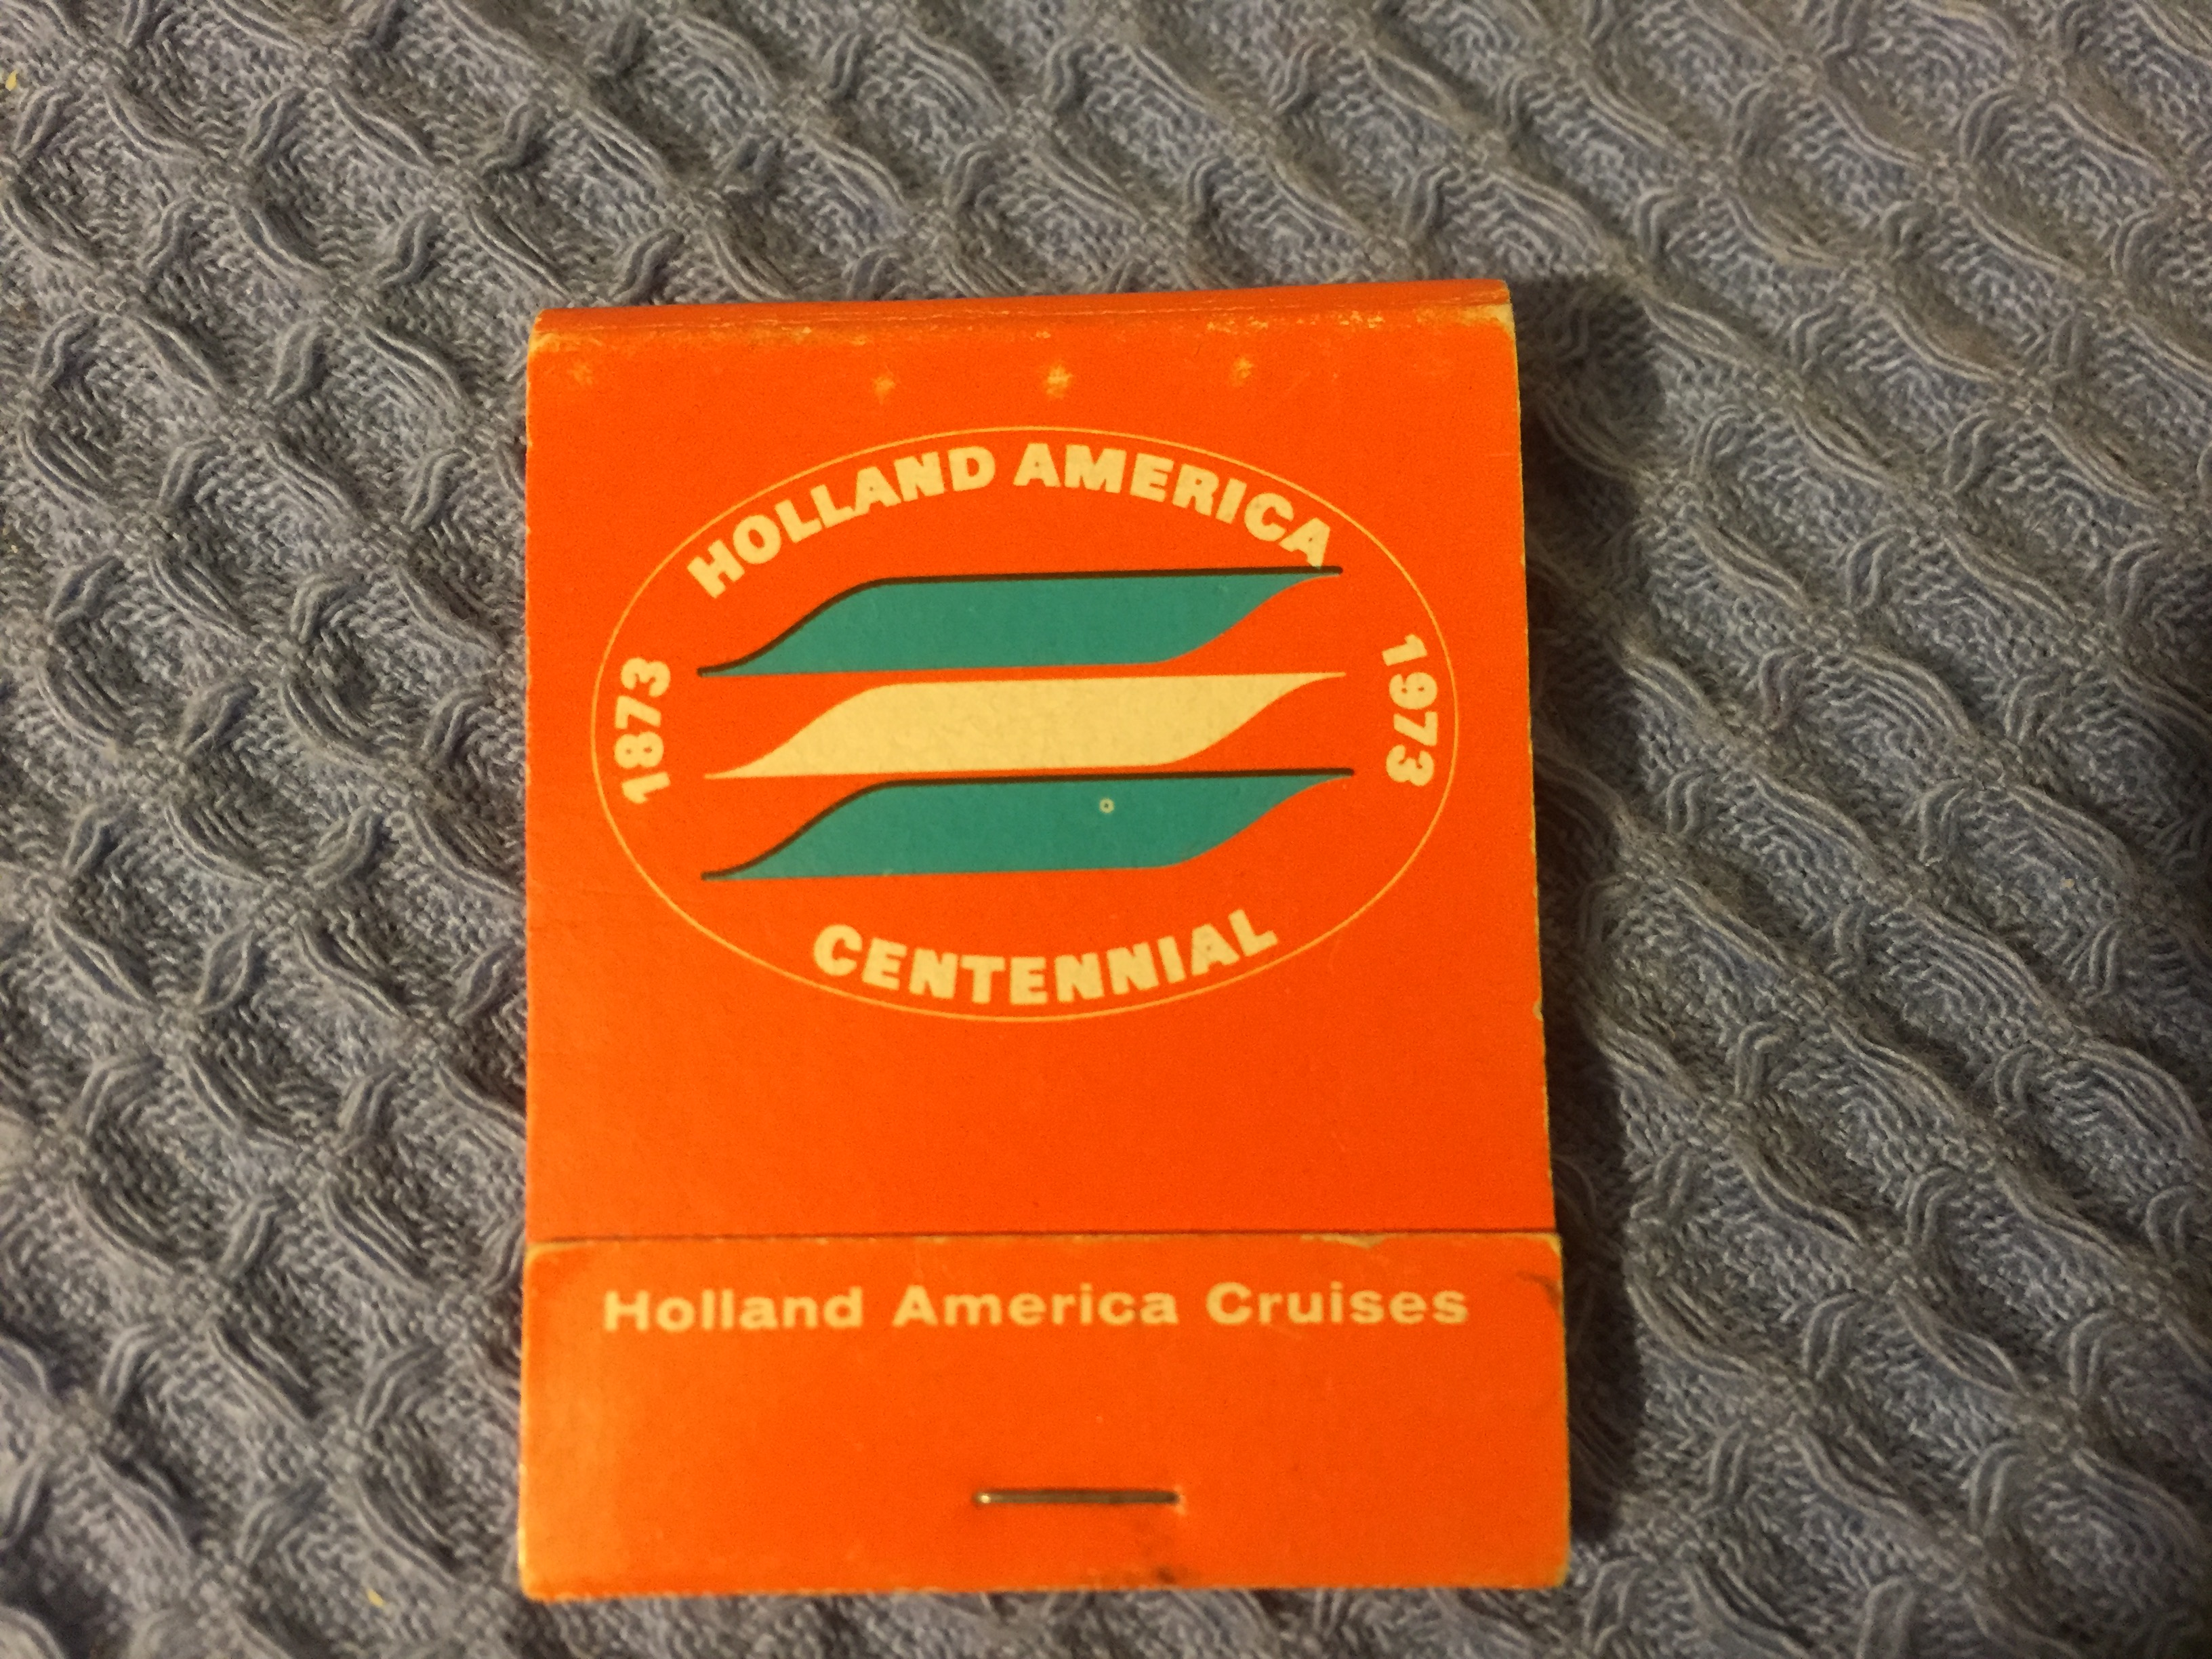 UNUSED CELEBRATORY FLAT PACK BOX OF MATCHES FROM THE HOLLAND AMERICA LINE CENTENNIAL YEAR